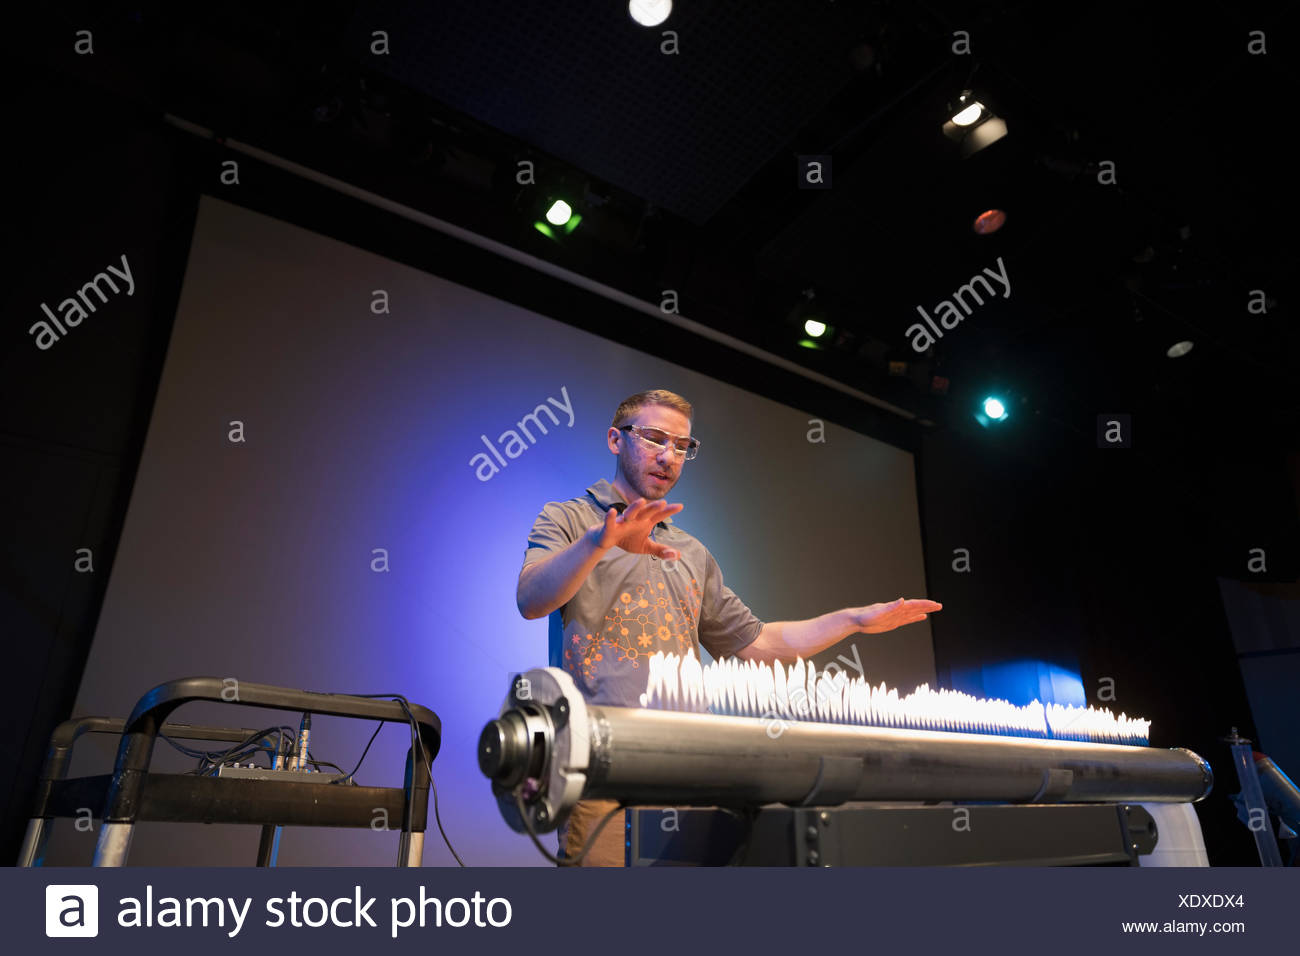 Scientist demonstrating acoustic waves using a Rubens tube in science center theater - Stock Image